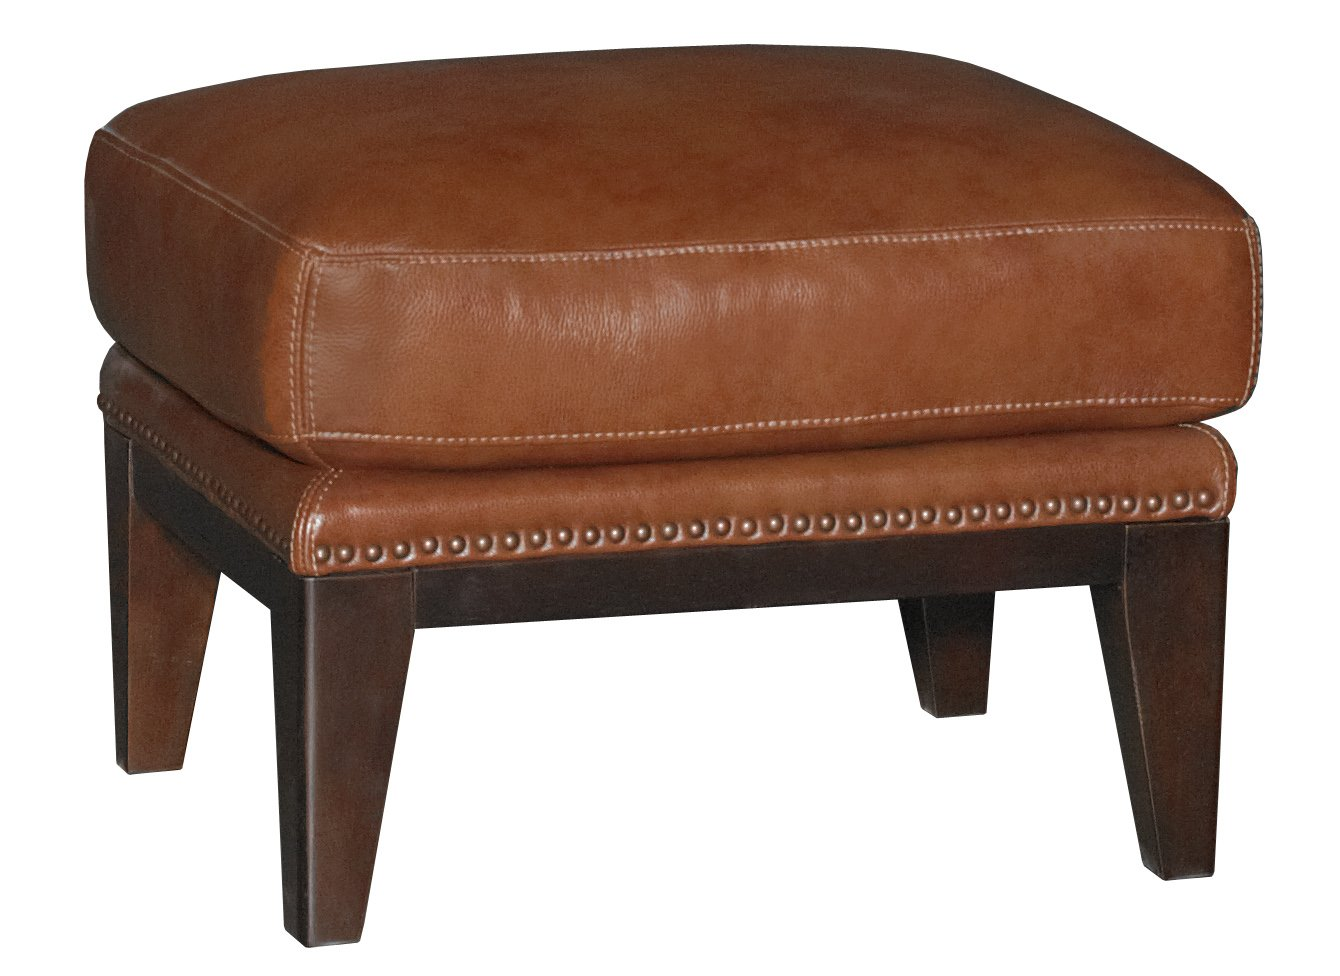 Chestnut brown leather match accent chair ottoman for Accent chair with brown leather sofa